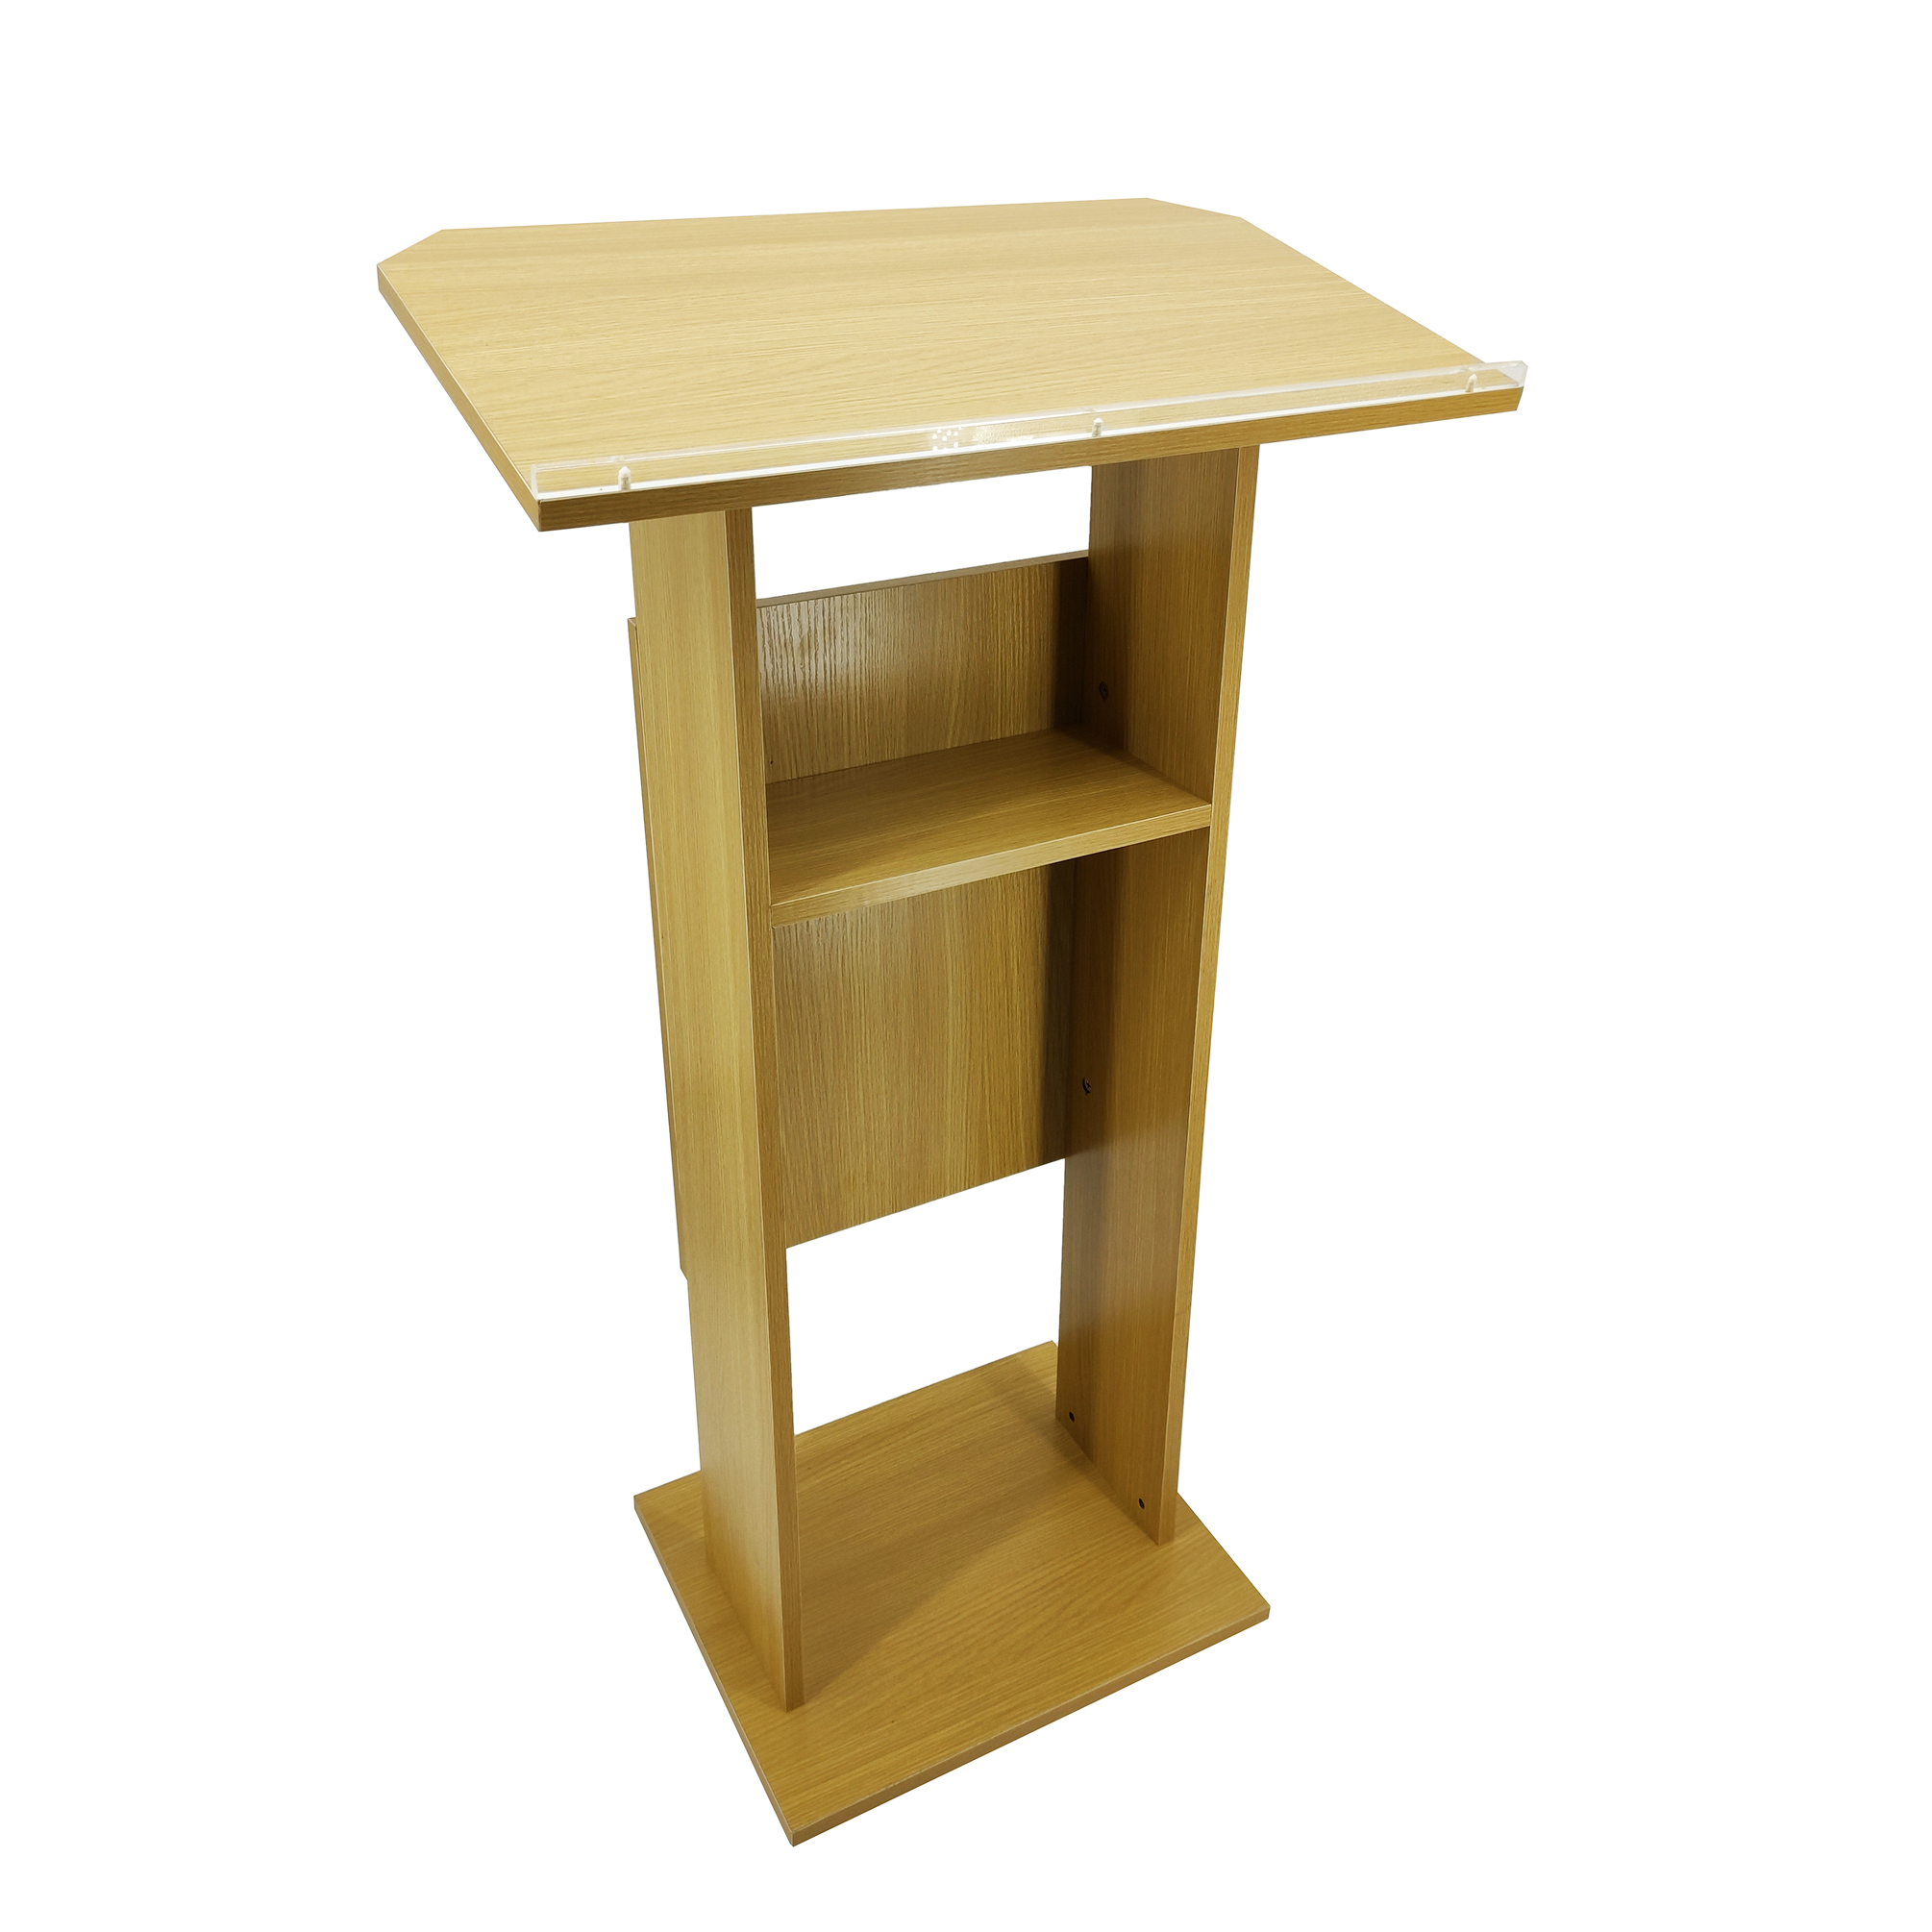 5 Of 6 Wood Mdf Podium Church Pulpit Conference Lectern Reception Desk